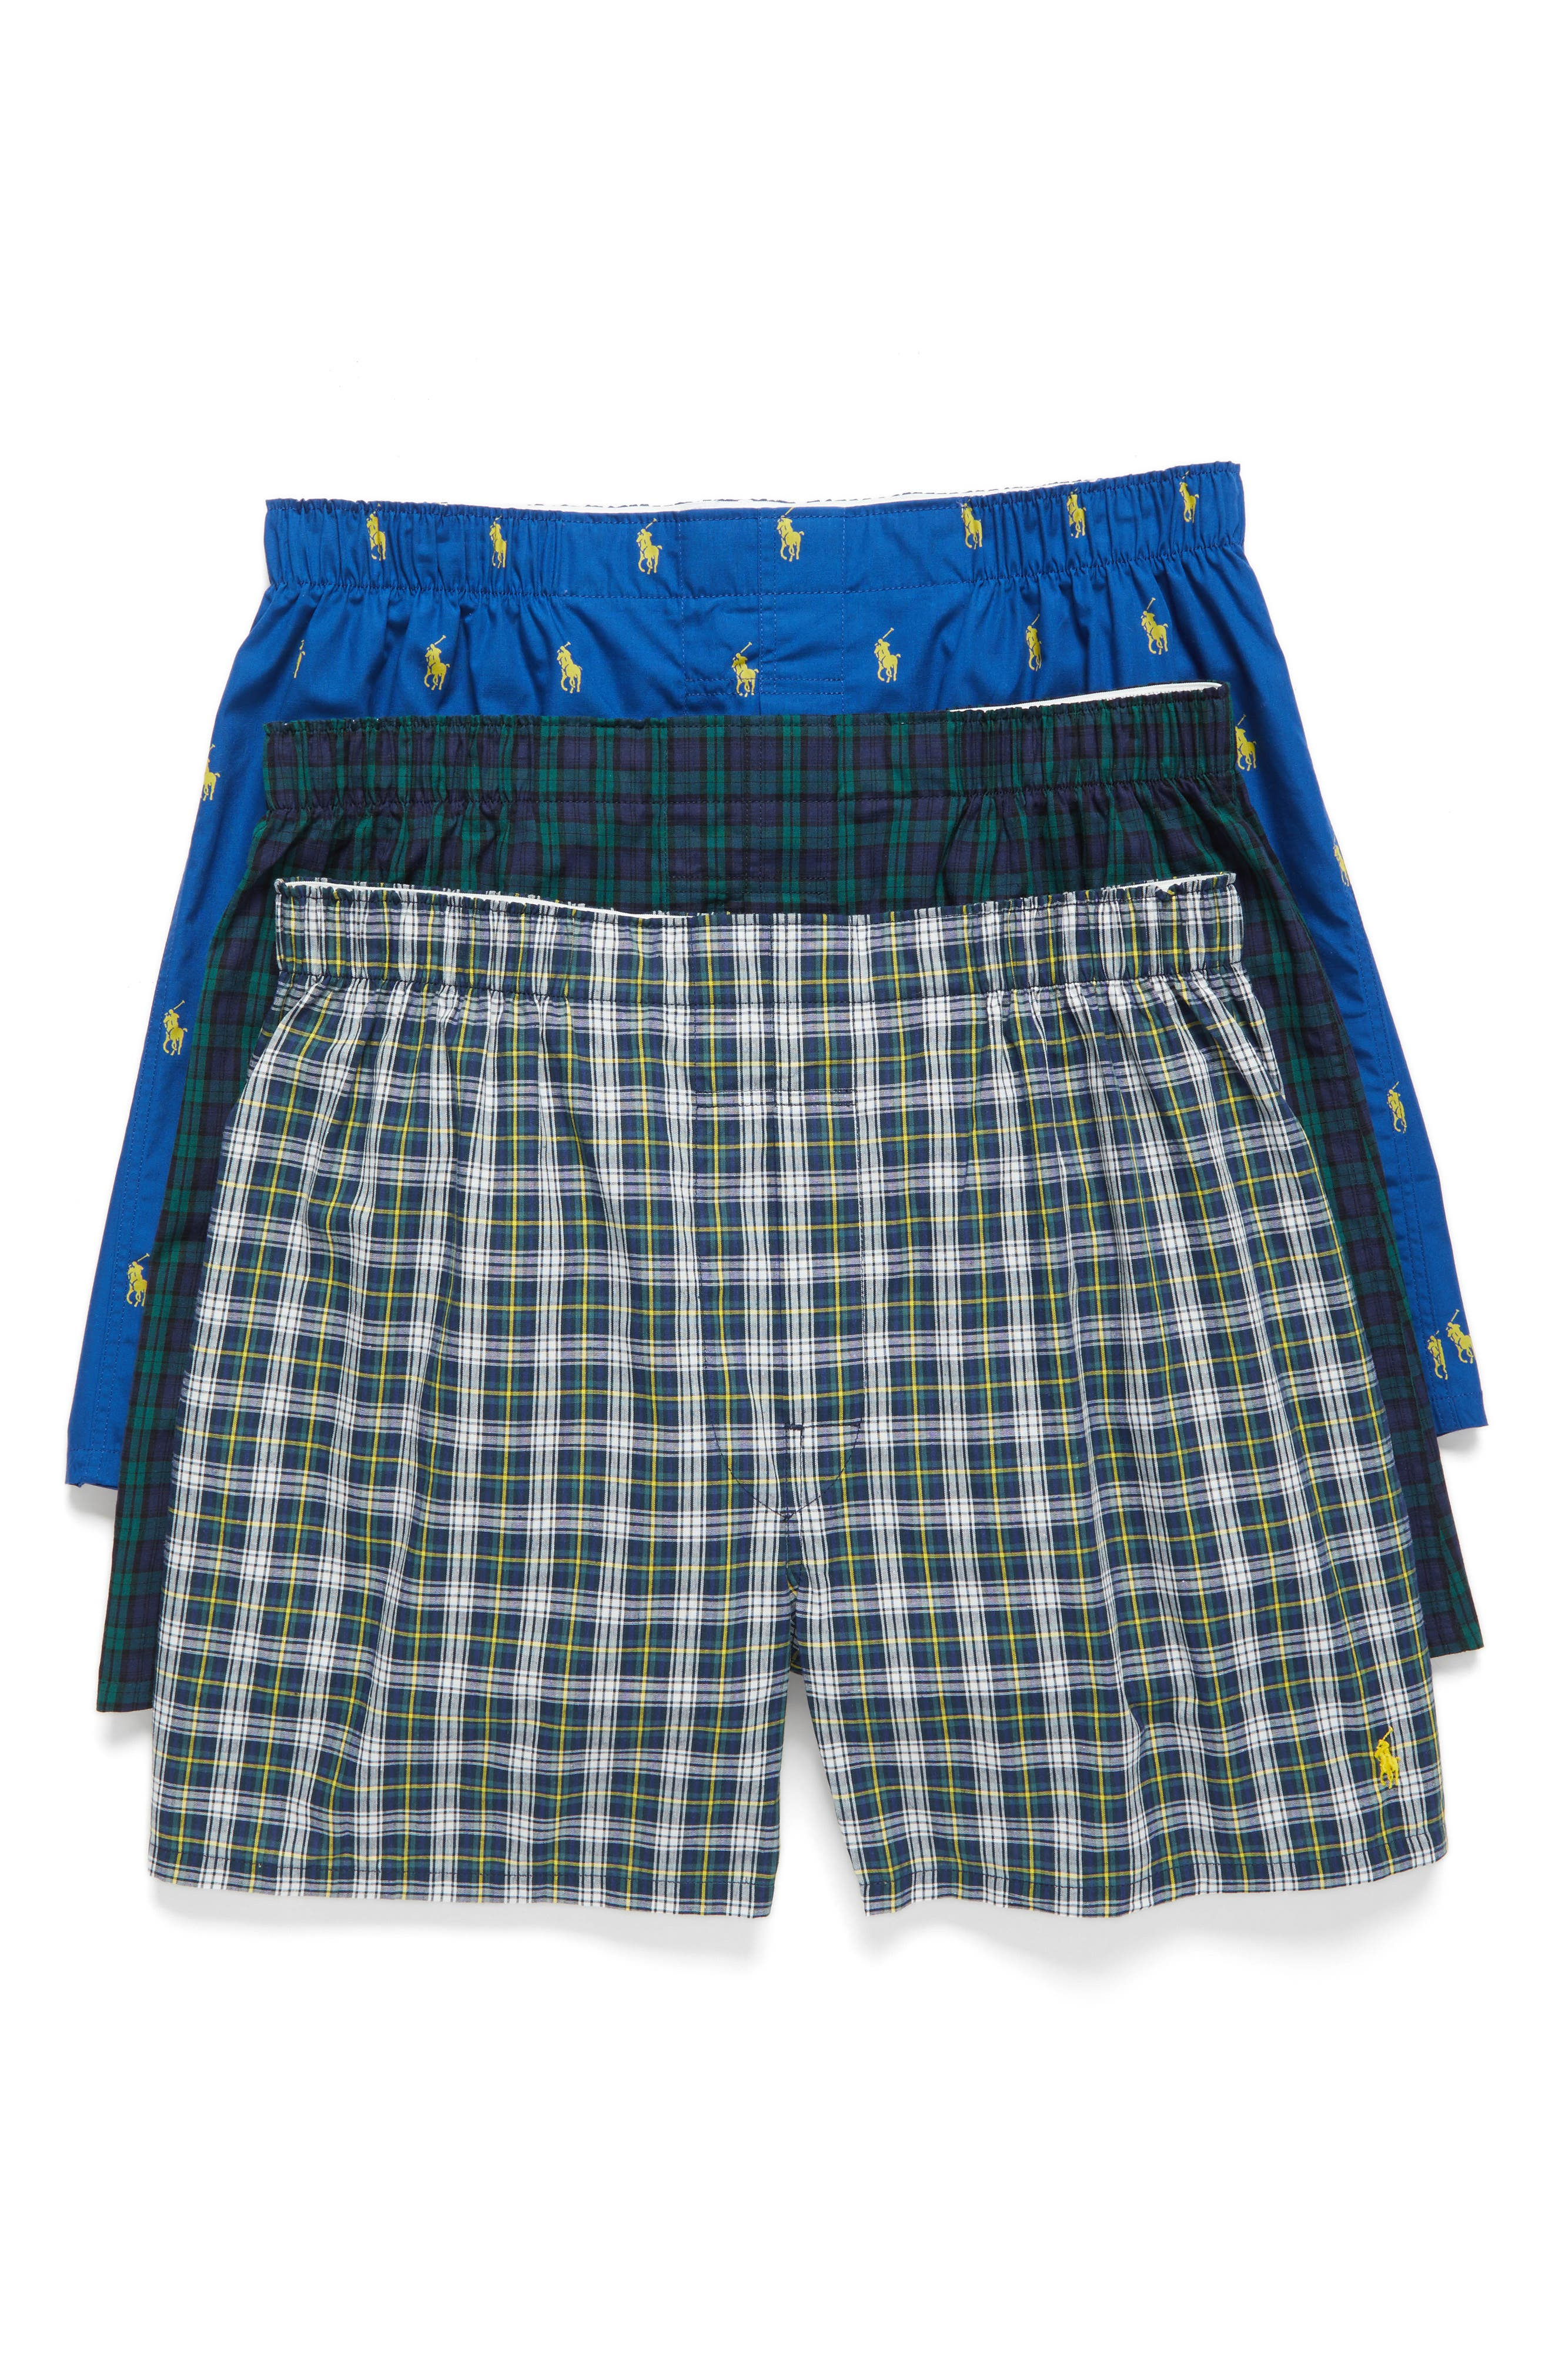 Assorted 3-Pack Woven Cotton Boxers,                             Main thumbnail 1, color,                             Blue/ Green Plaid/ Navy Plaid